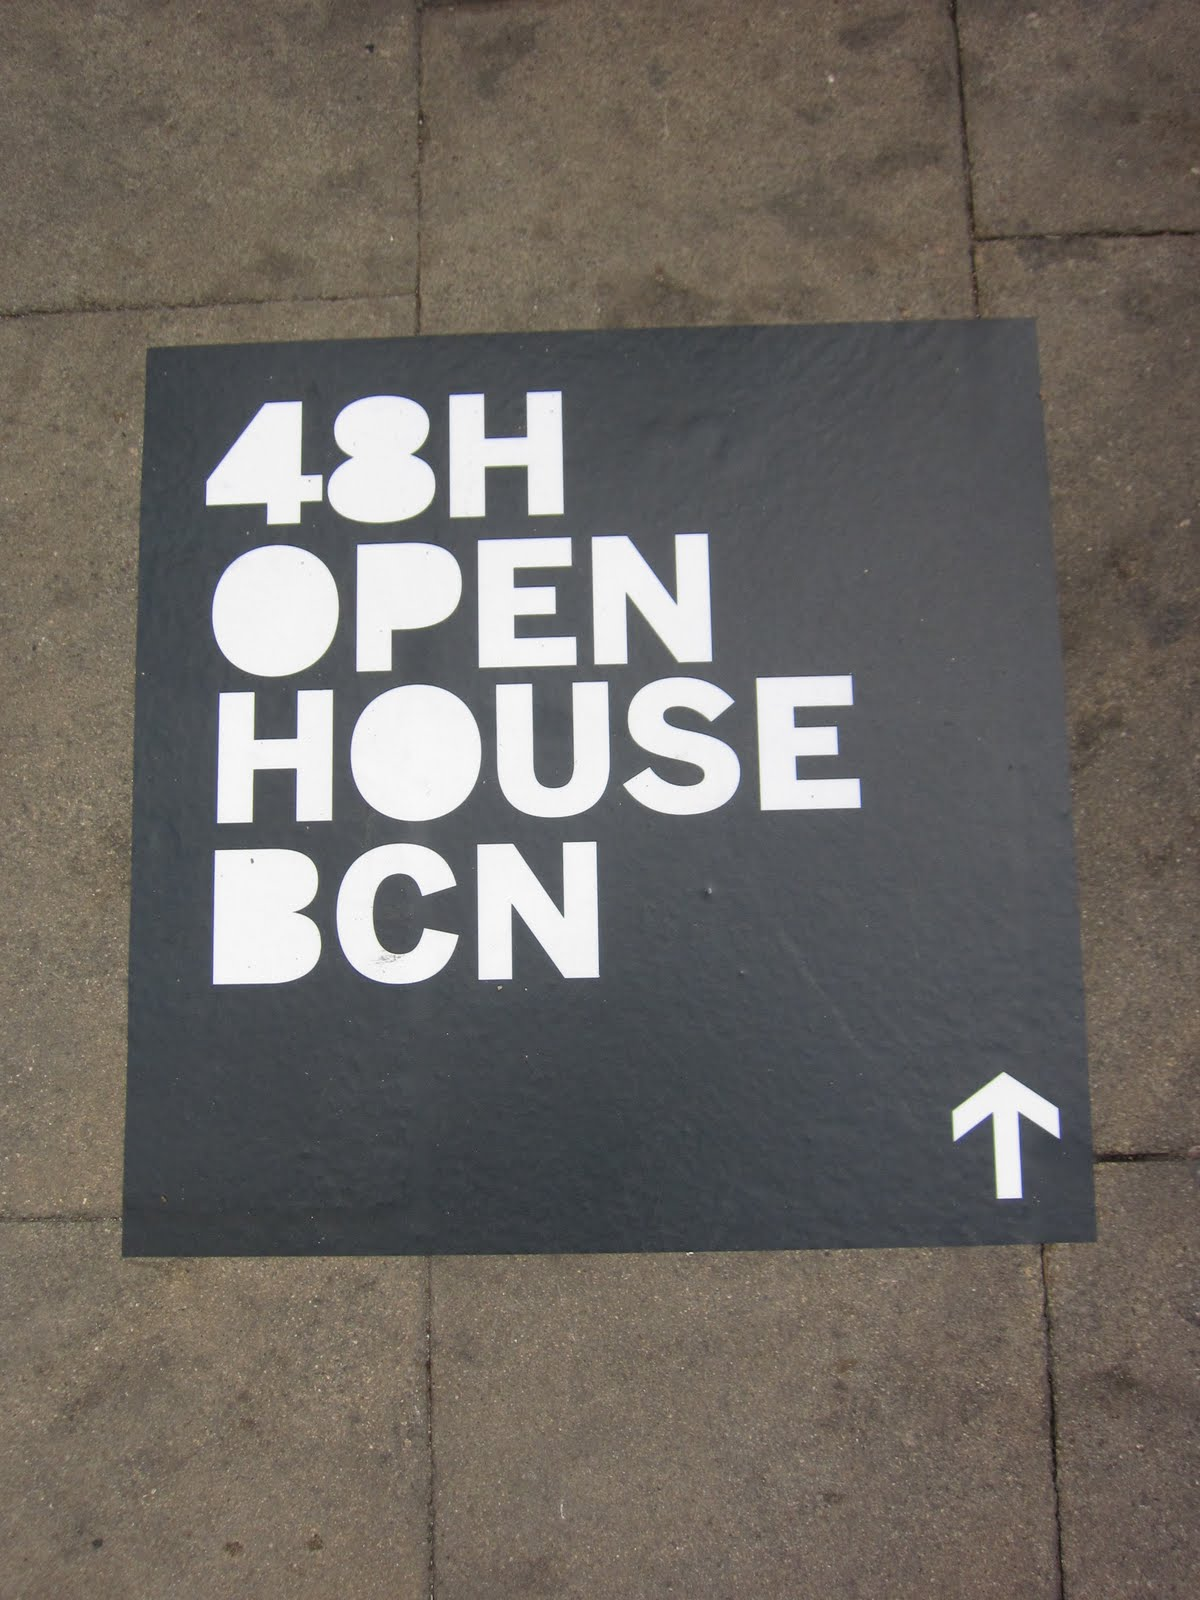 Where is darren now 48 hour open house barcelona day 1 for Openhouse barcelona